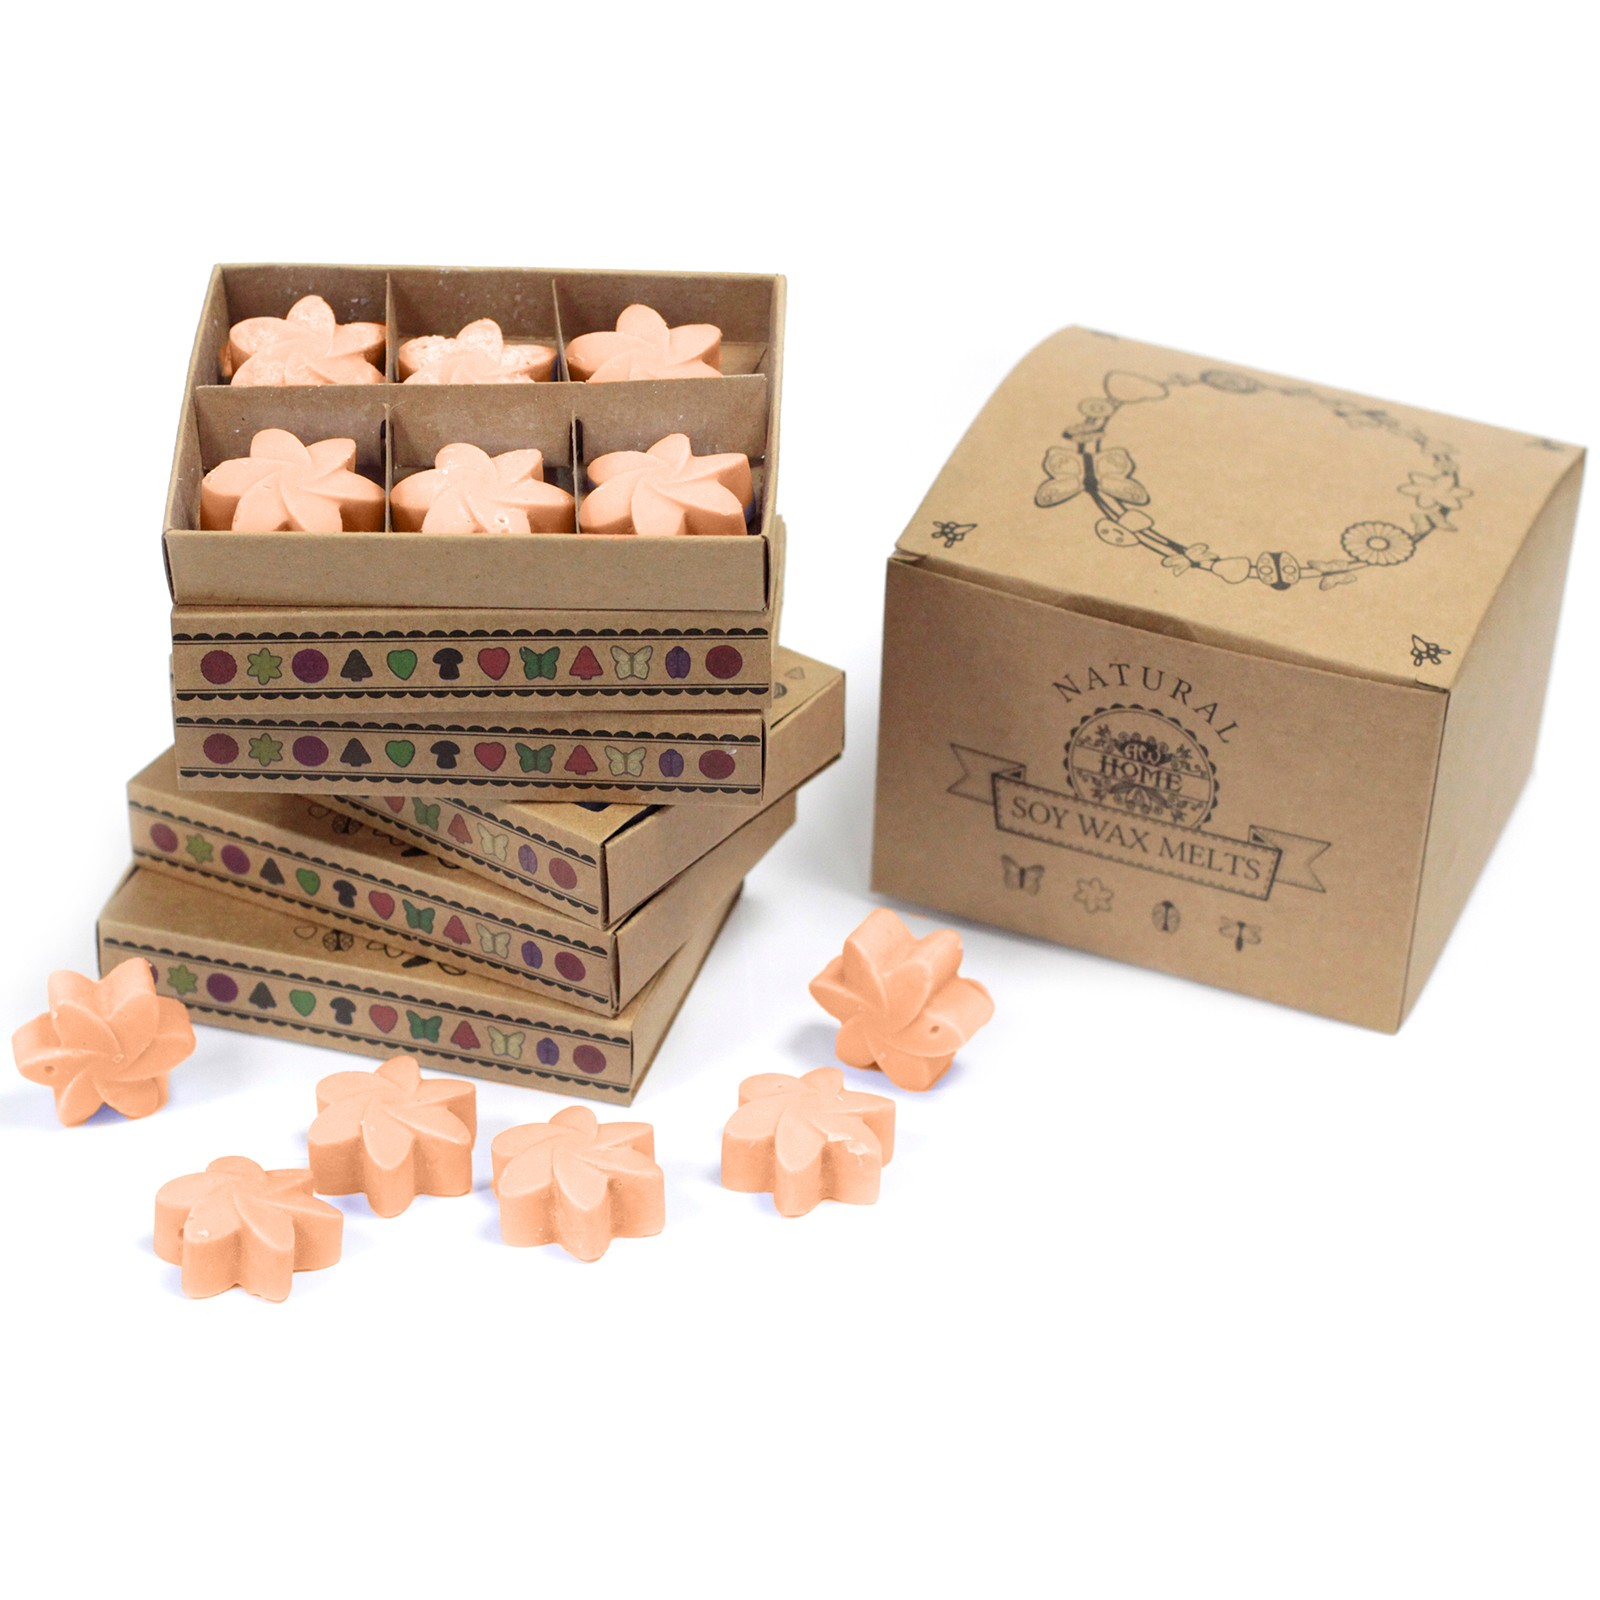 Box of 6 Wax Melts Tuberose